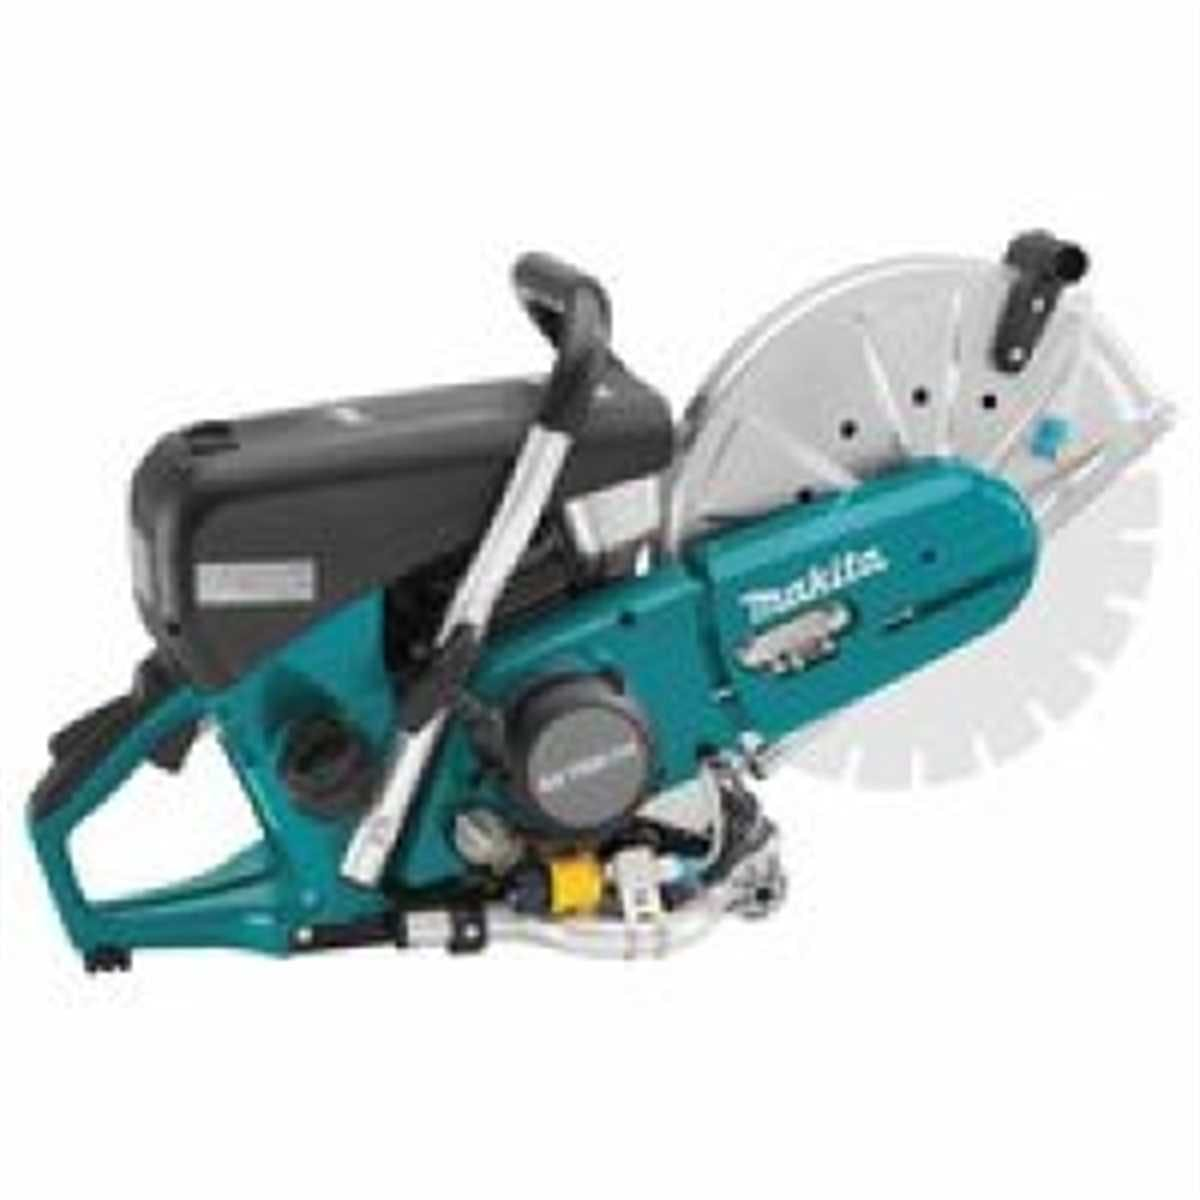 "14"" MM4 4-STROKE POWER CUTTER 458-EK7651H Package design / cutting equipment sold by Janeice Products Co Inc."